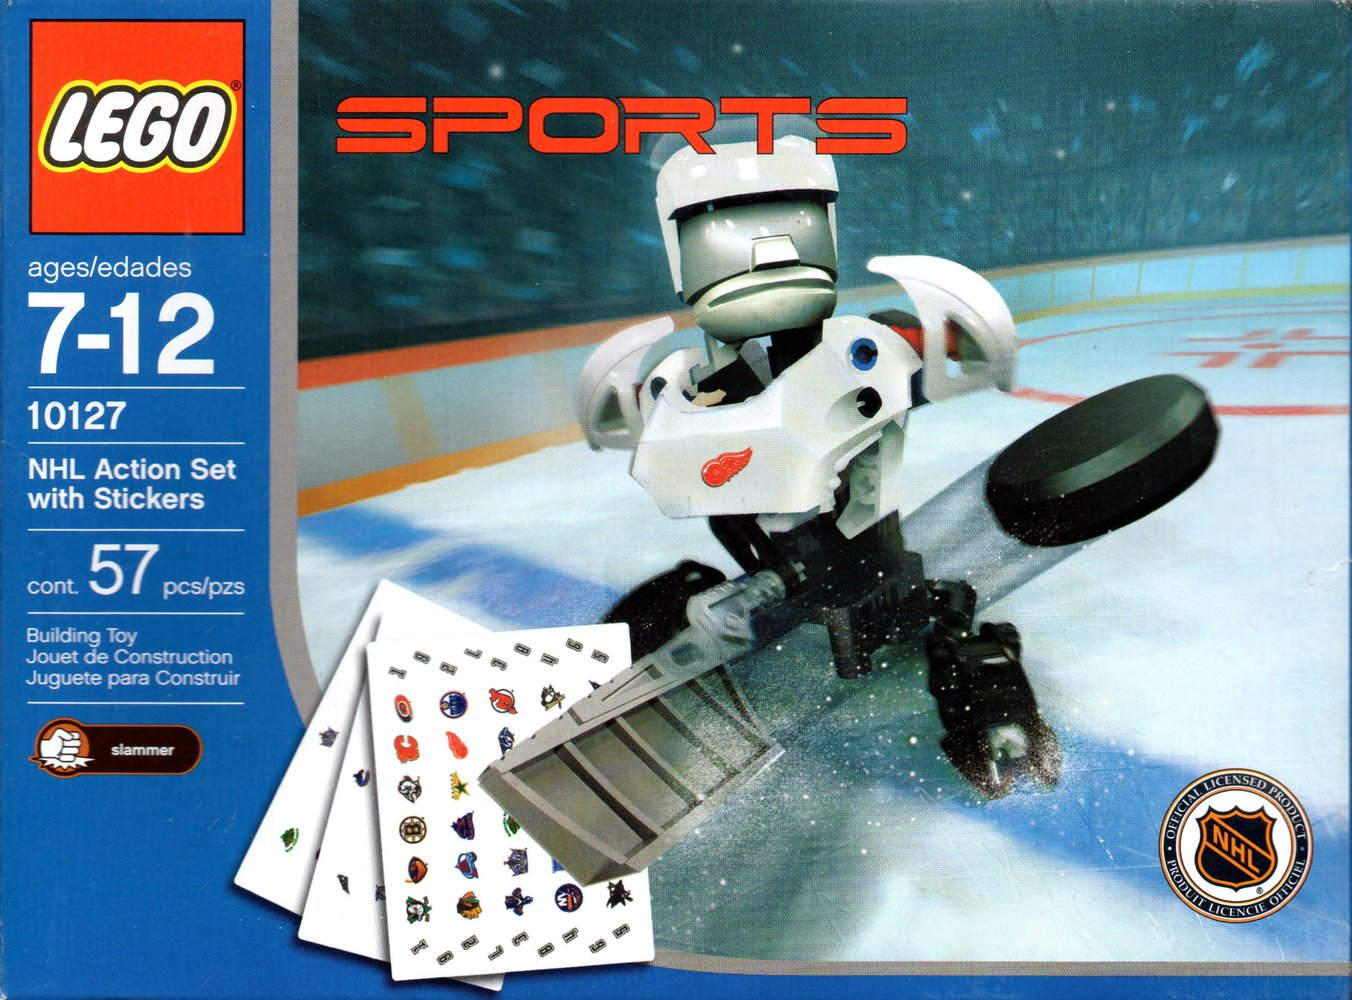 NHL Action Set with Stickers